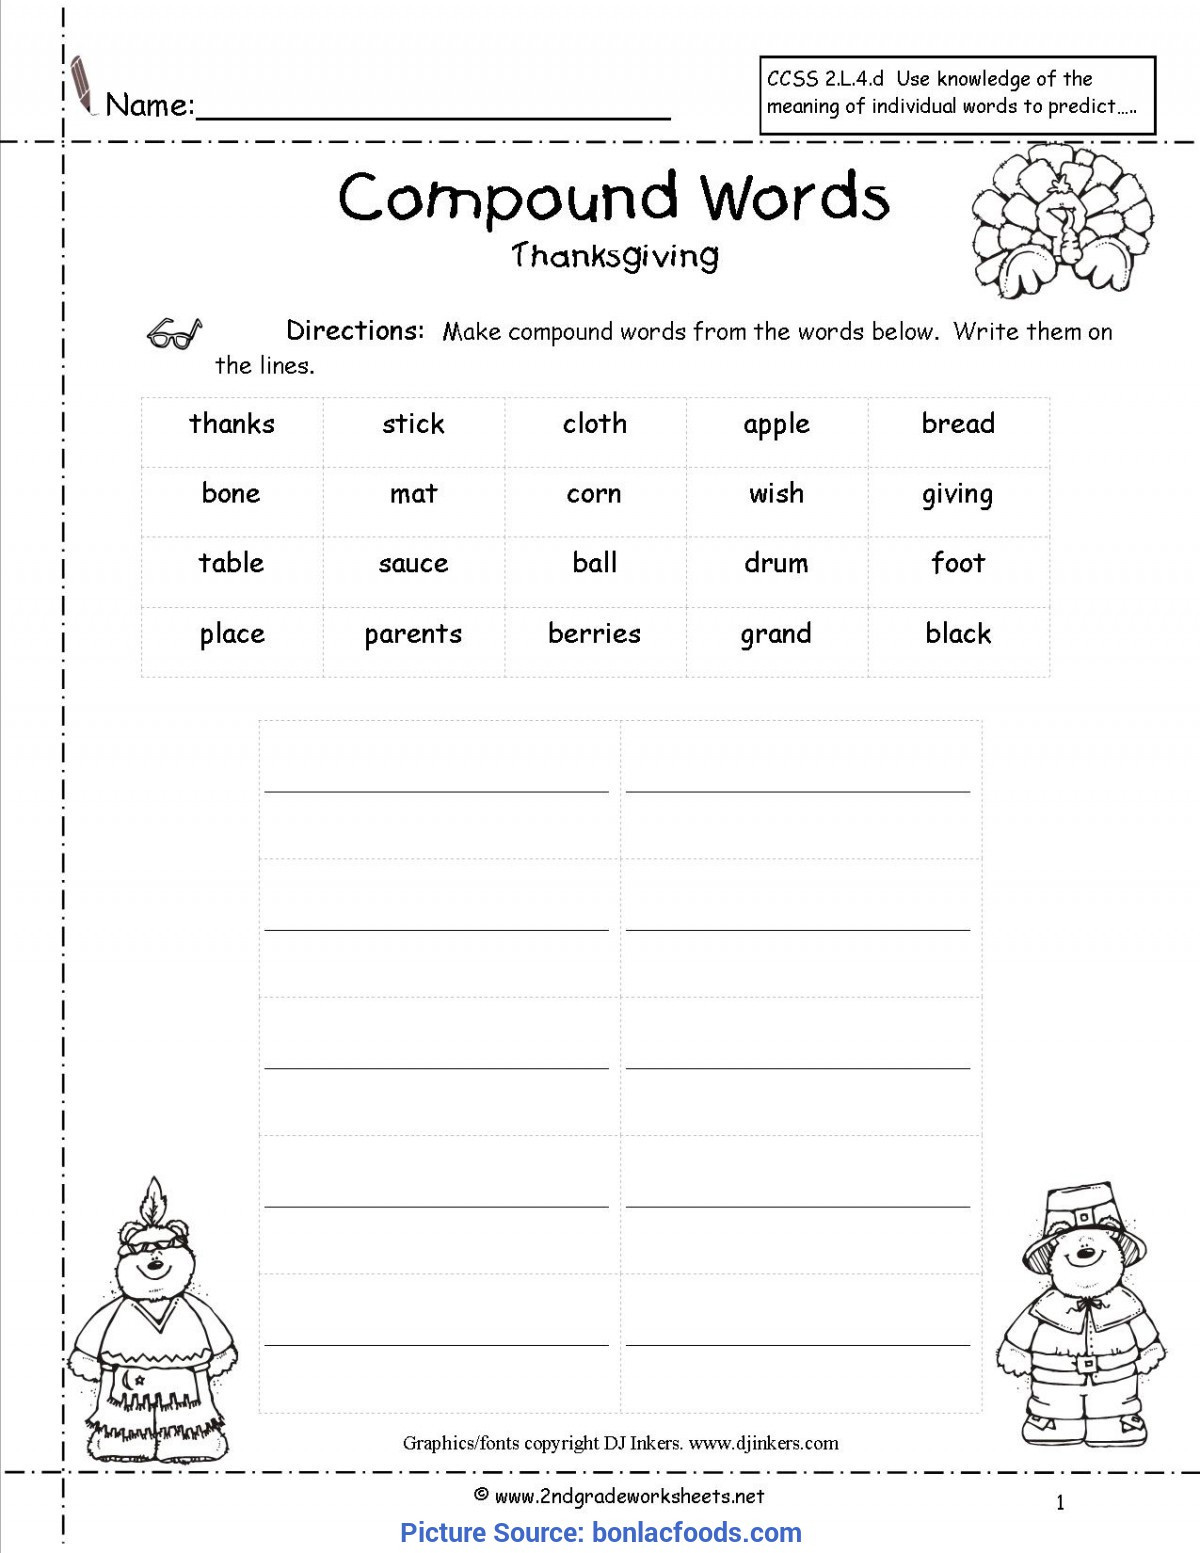 Compound Word Worksheet 2nd Grade Plex 2nd Grade Lesson Plans for Pound Words Worksheets